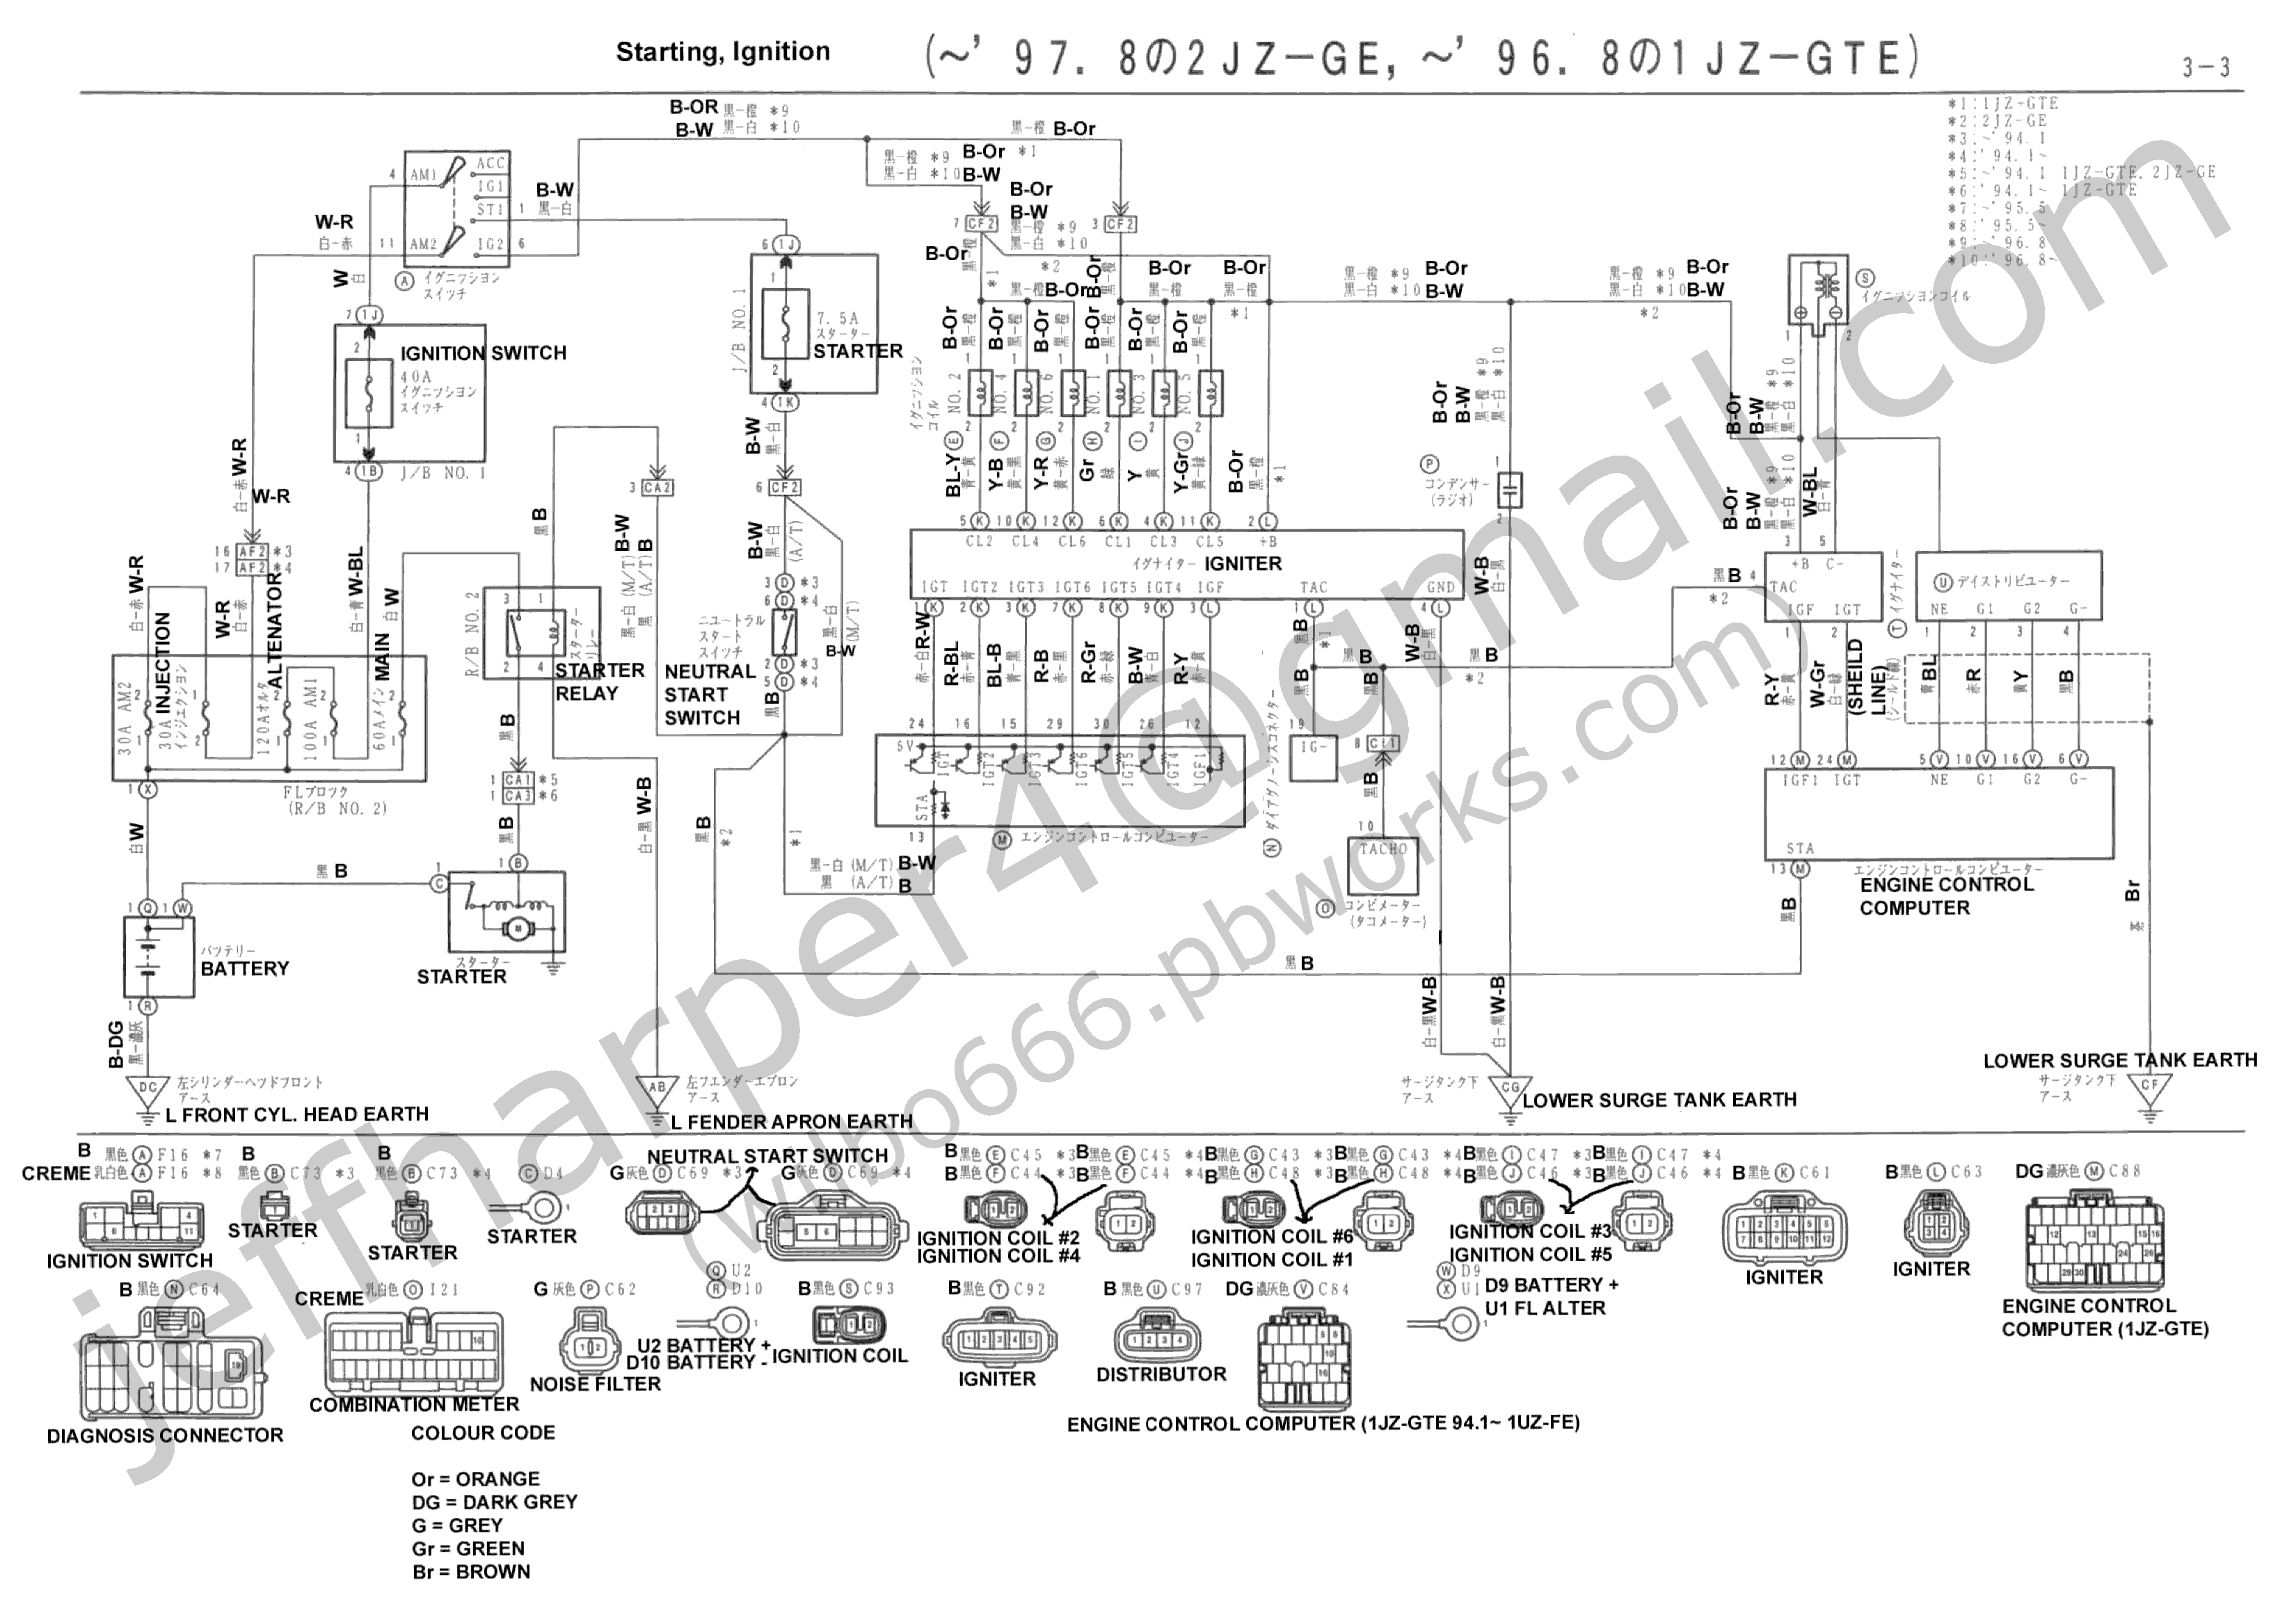 1jz wiring harness diagram 1jz circuit diagrams blog wiring diagram 1jz motor wiring 1jz circuit diagrams [ 3300 x 2329 Pixel ]